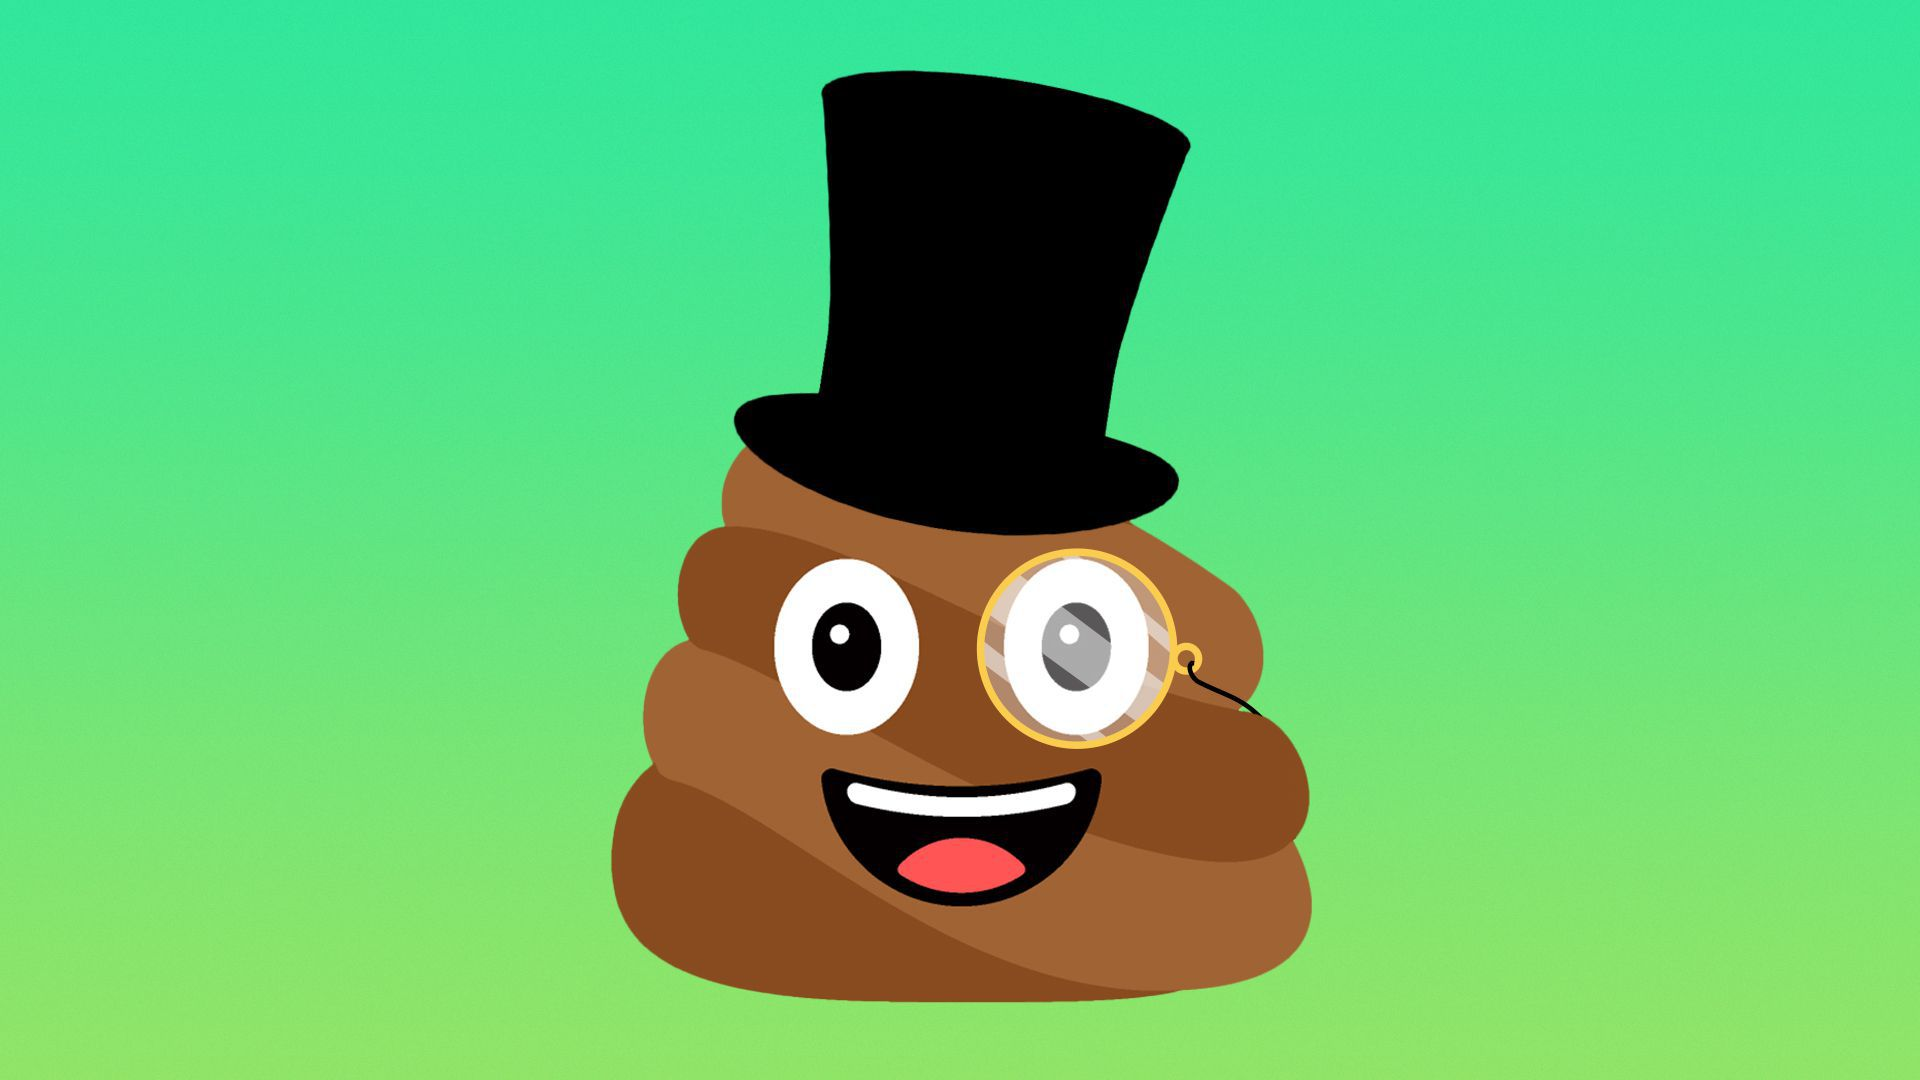 Illustration of the poop emoji wearing a top hat and monocle.